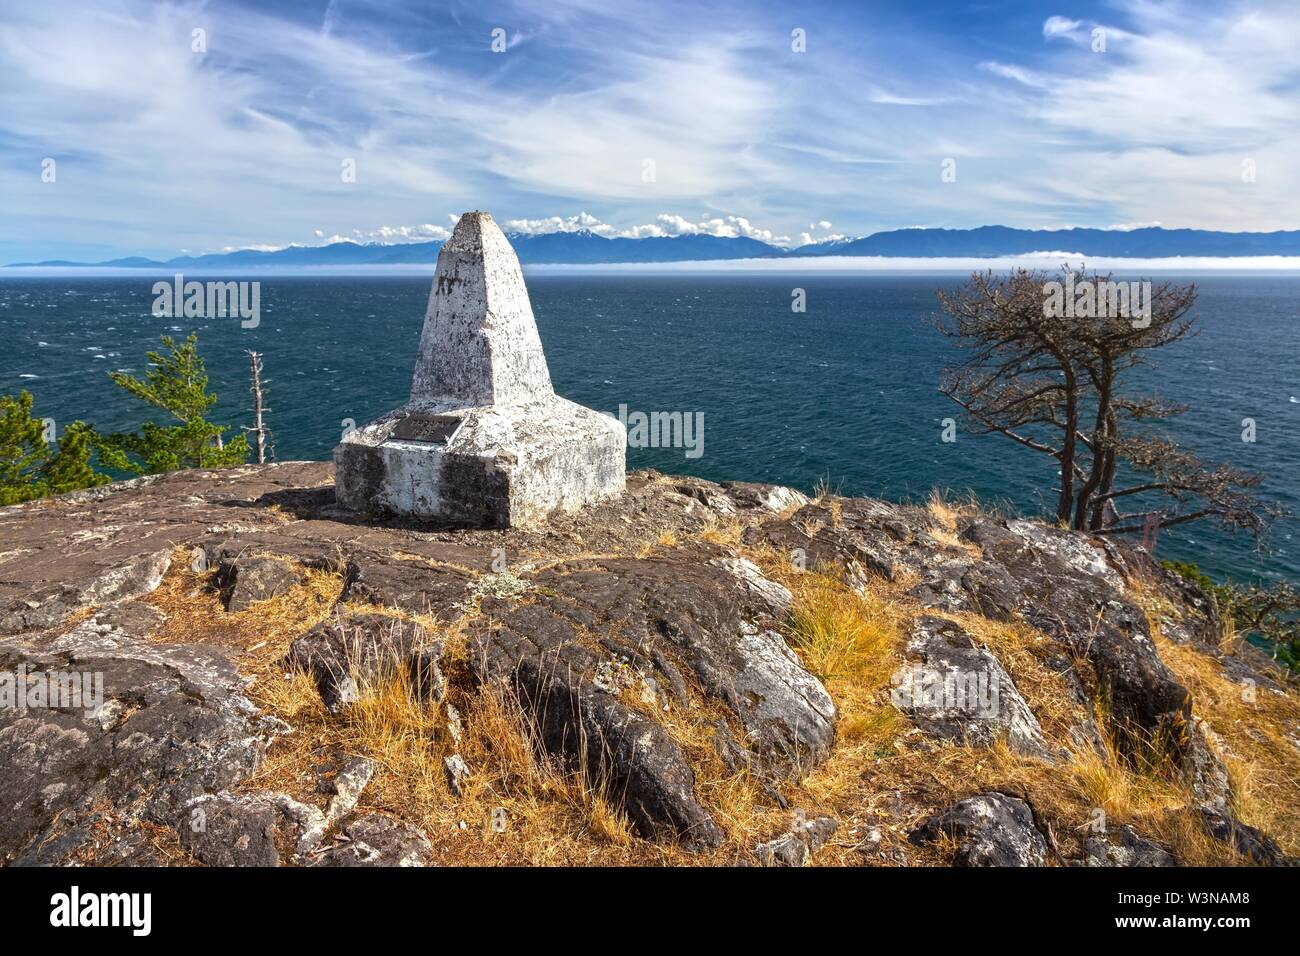 Historic Beechey Head Geographic Survey Reference Marker for the Canada - US International Border overlooking Strait of Juan De Fuca near Sooke, BC Stock Photo